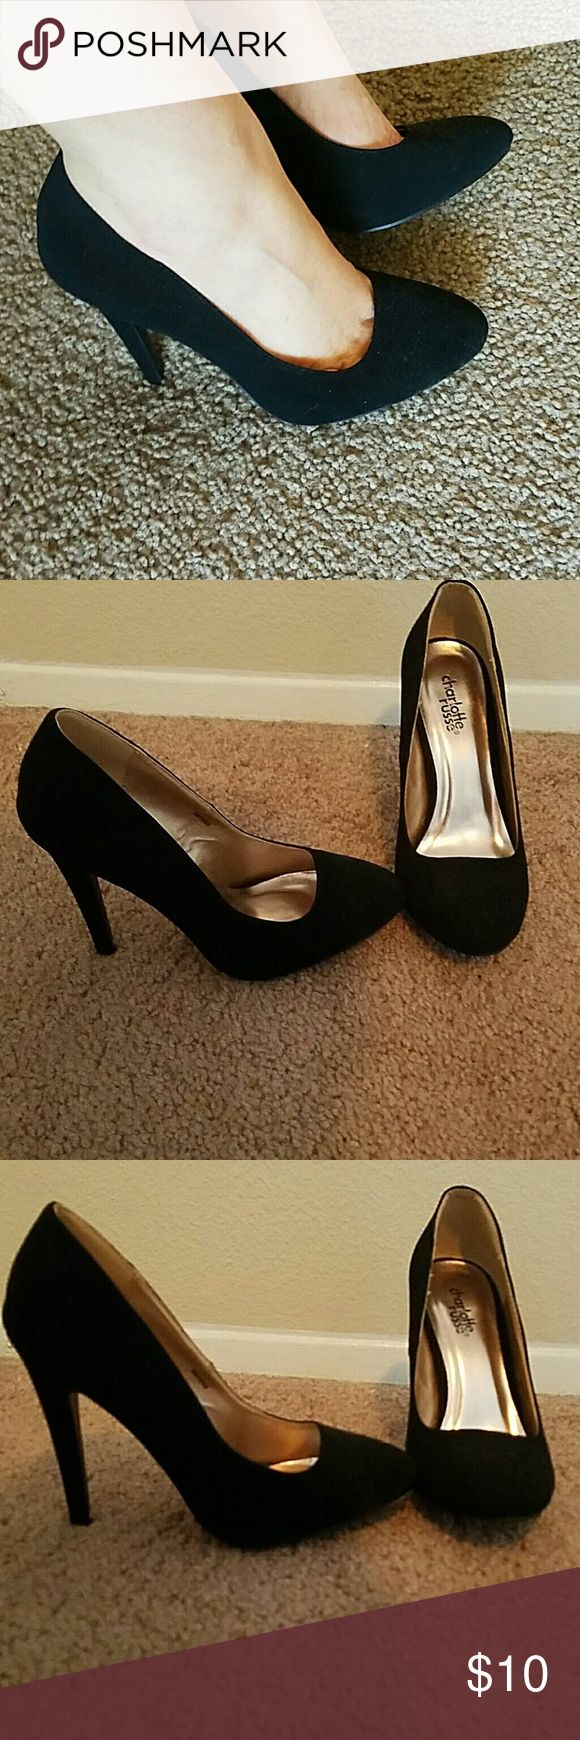 Charlotte russe heels Black heels size 5. Very comfortable. It was used once for a job interview. Charlotte Russe Shoes Heels